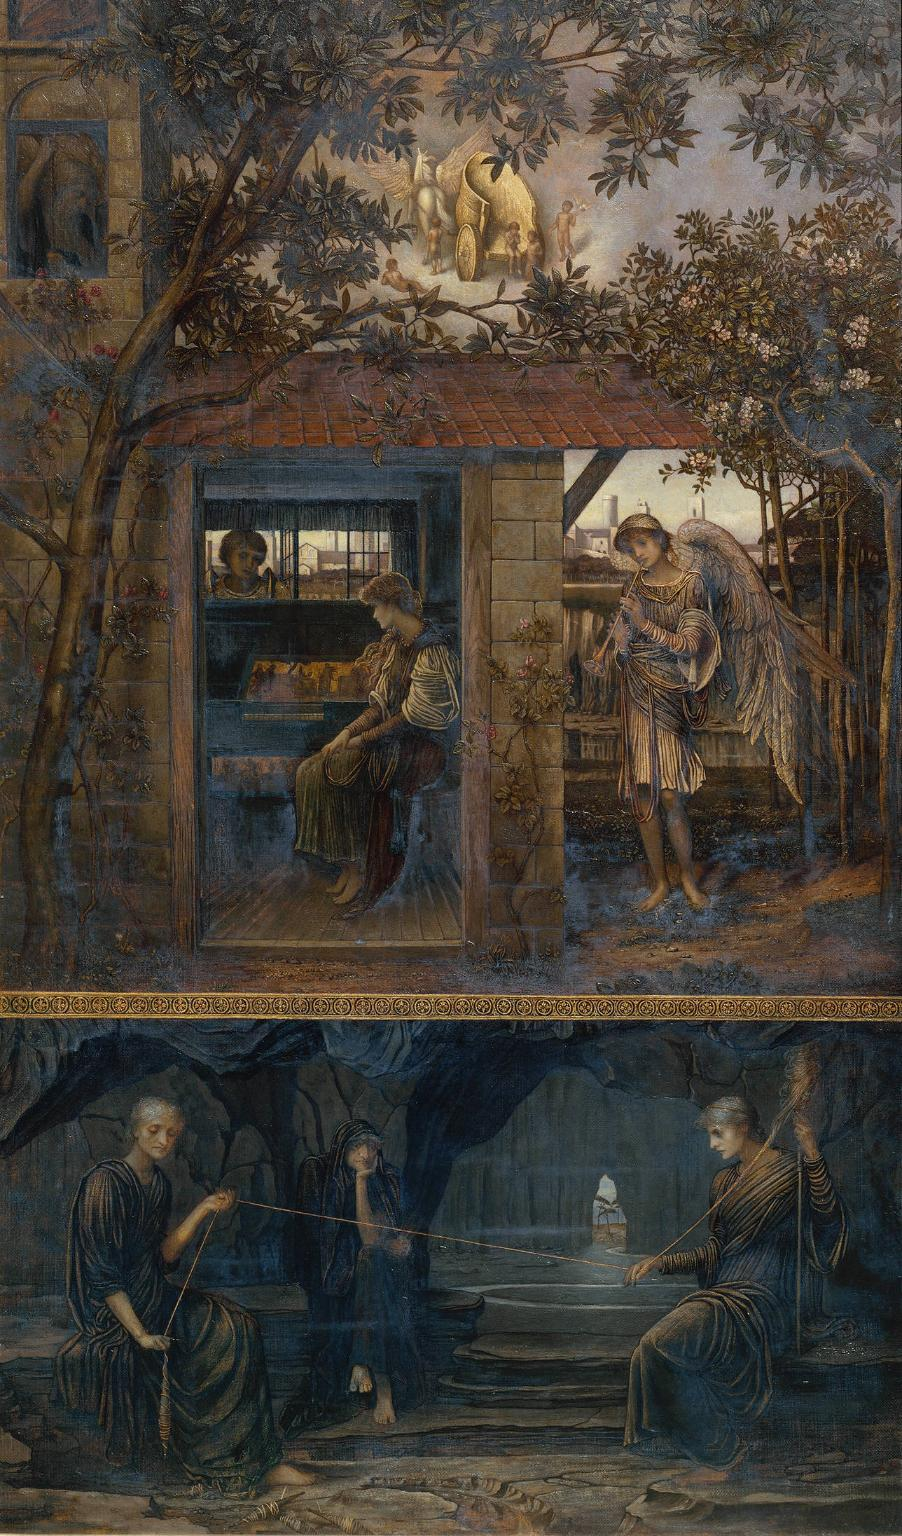 A Golden Thread exhibited 1885 by John Melhuish Strudwick 1849-1935